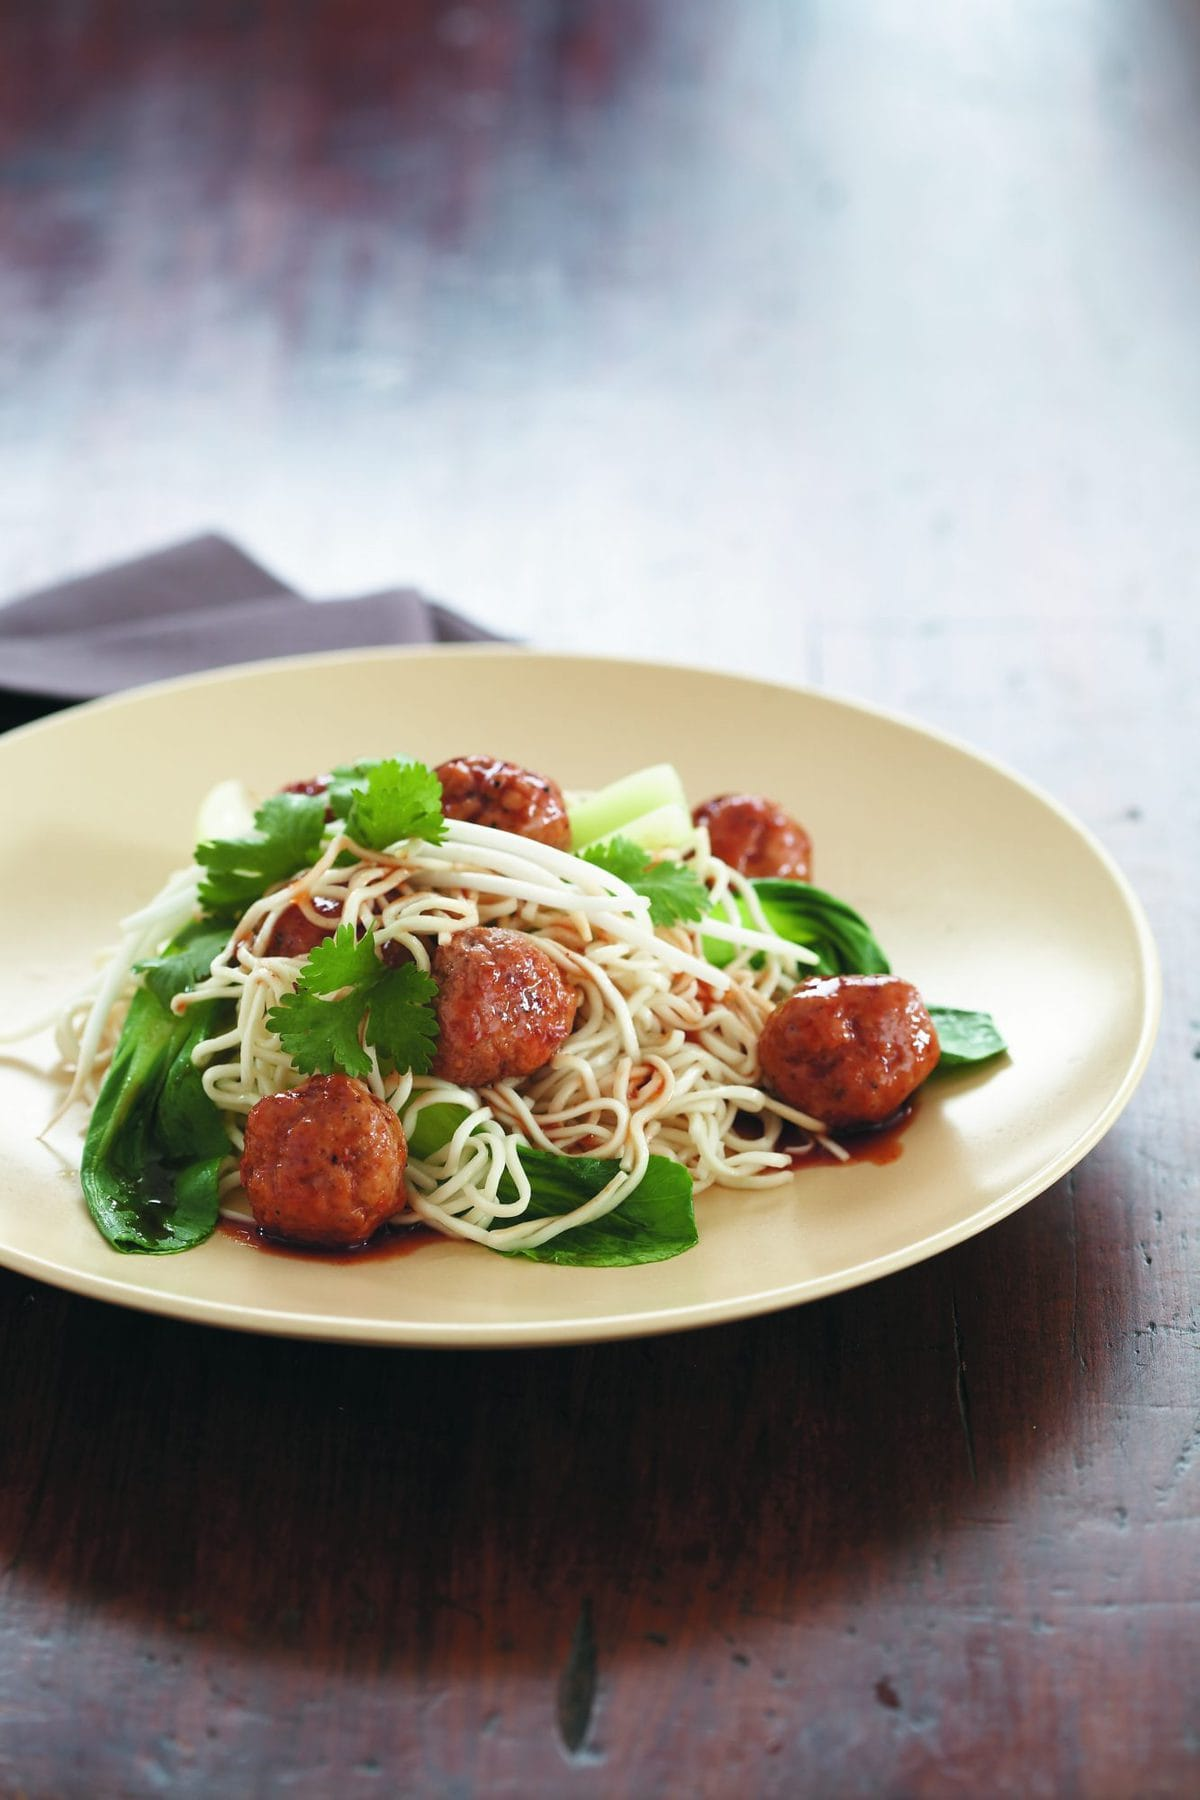 Pork Meatballs With Egg Noodles And Asian Greens Healthy